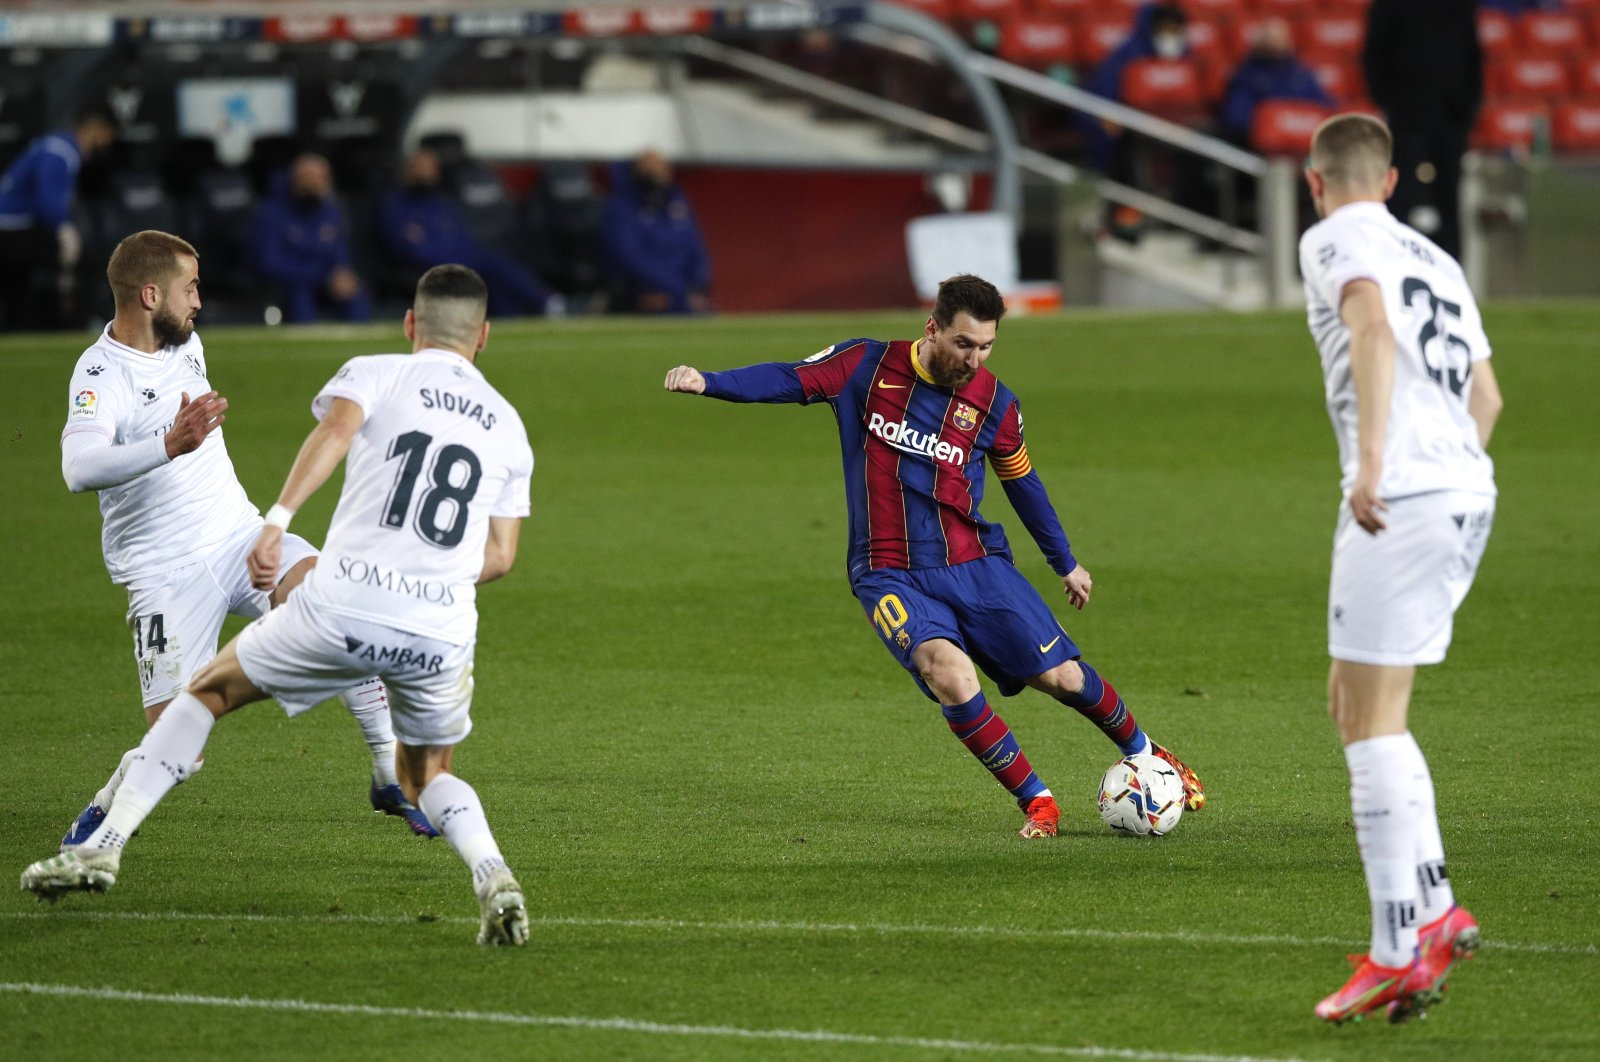 Barcelona forward Lionel Messi scores against Huesca in a La Liga match at Camp Nou, Barcelona, Spain, March 15, 2021. (Reuters Photo)